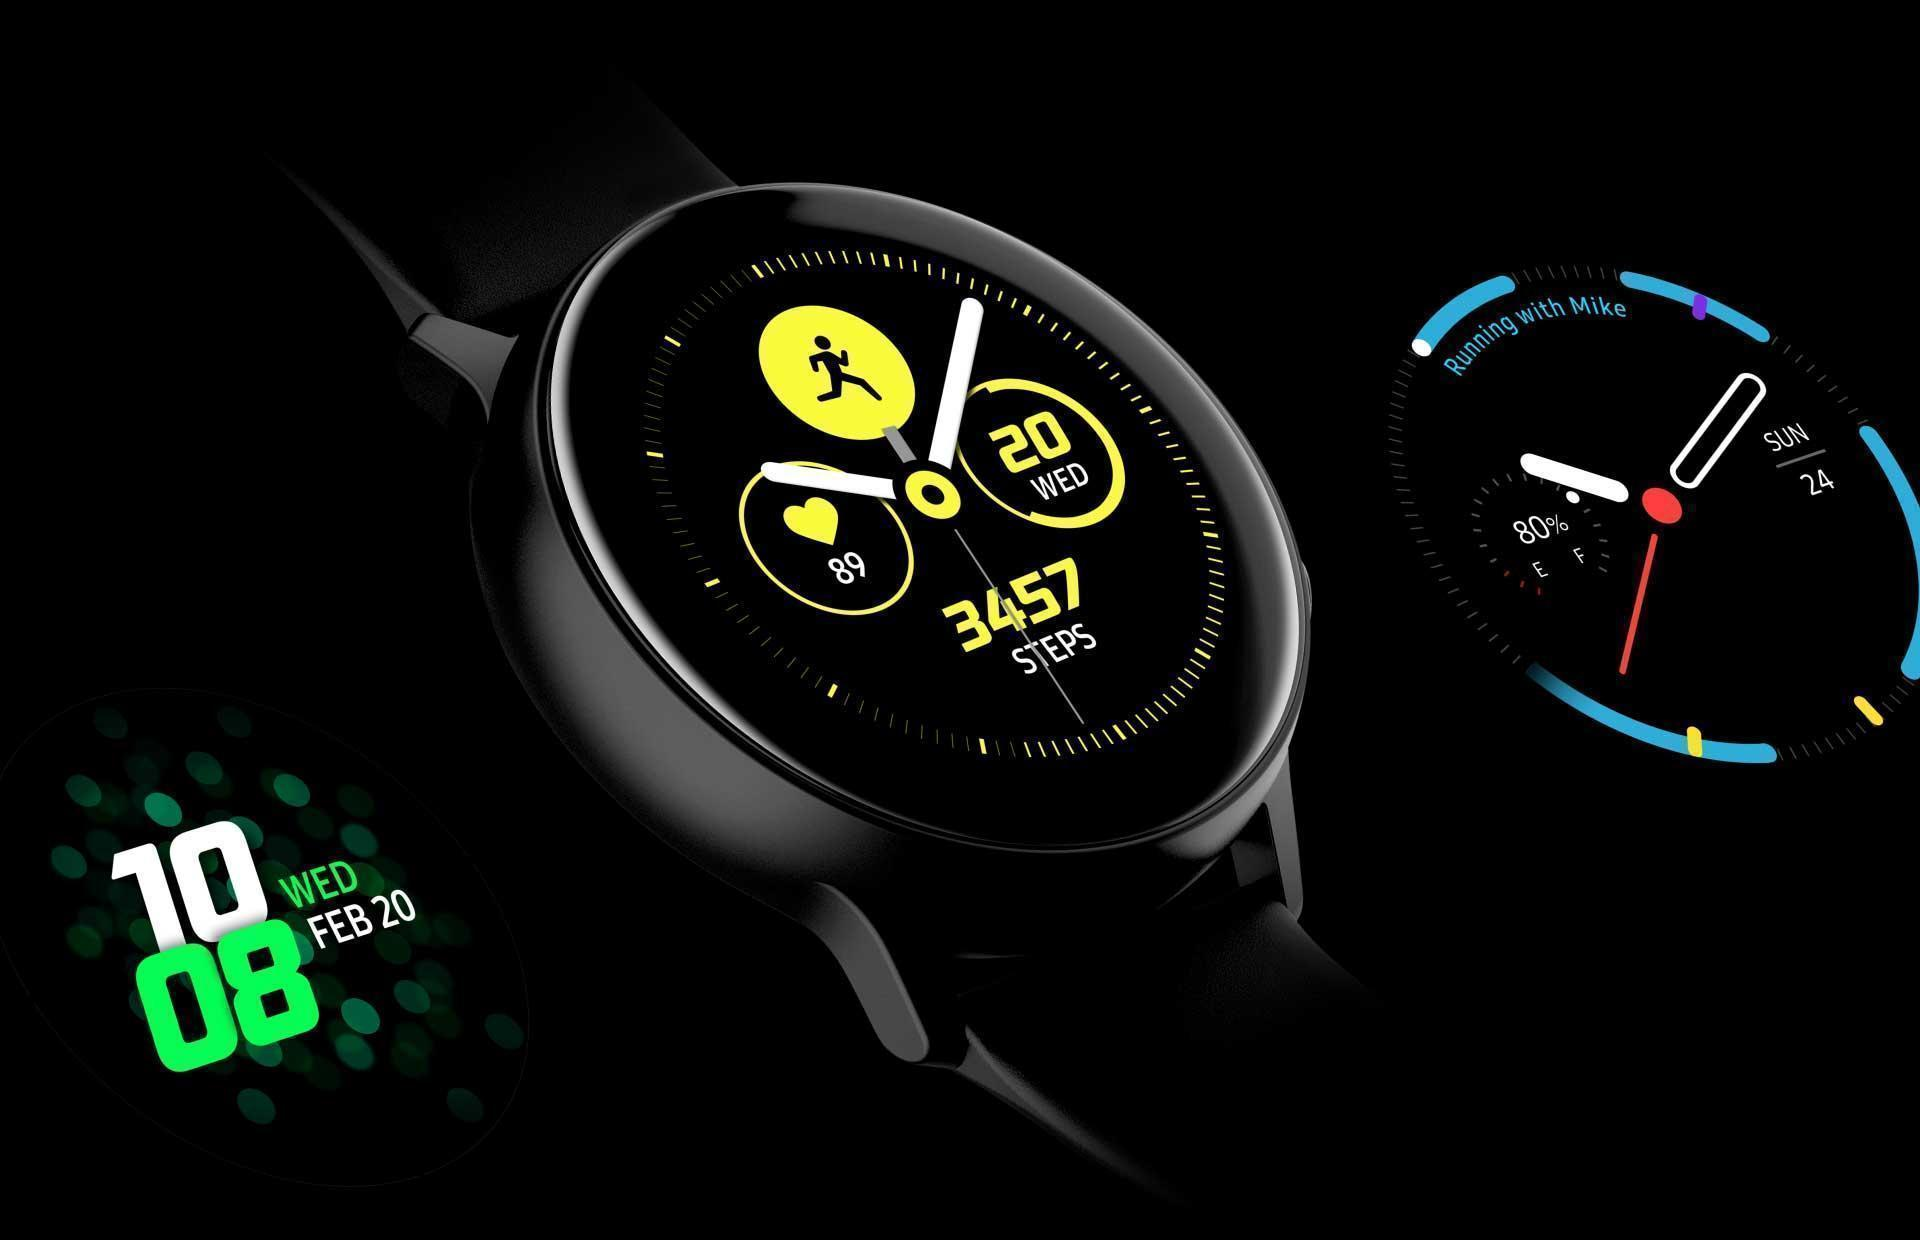 Four different designs of watch faces are exposed on the screen in The Galaxy Watch Active one by one. - face1